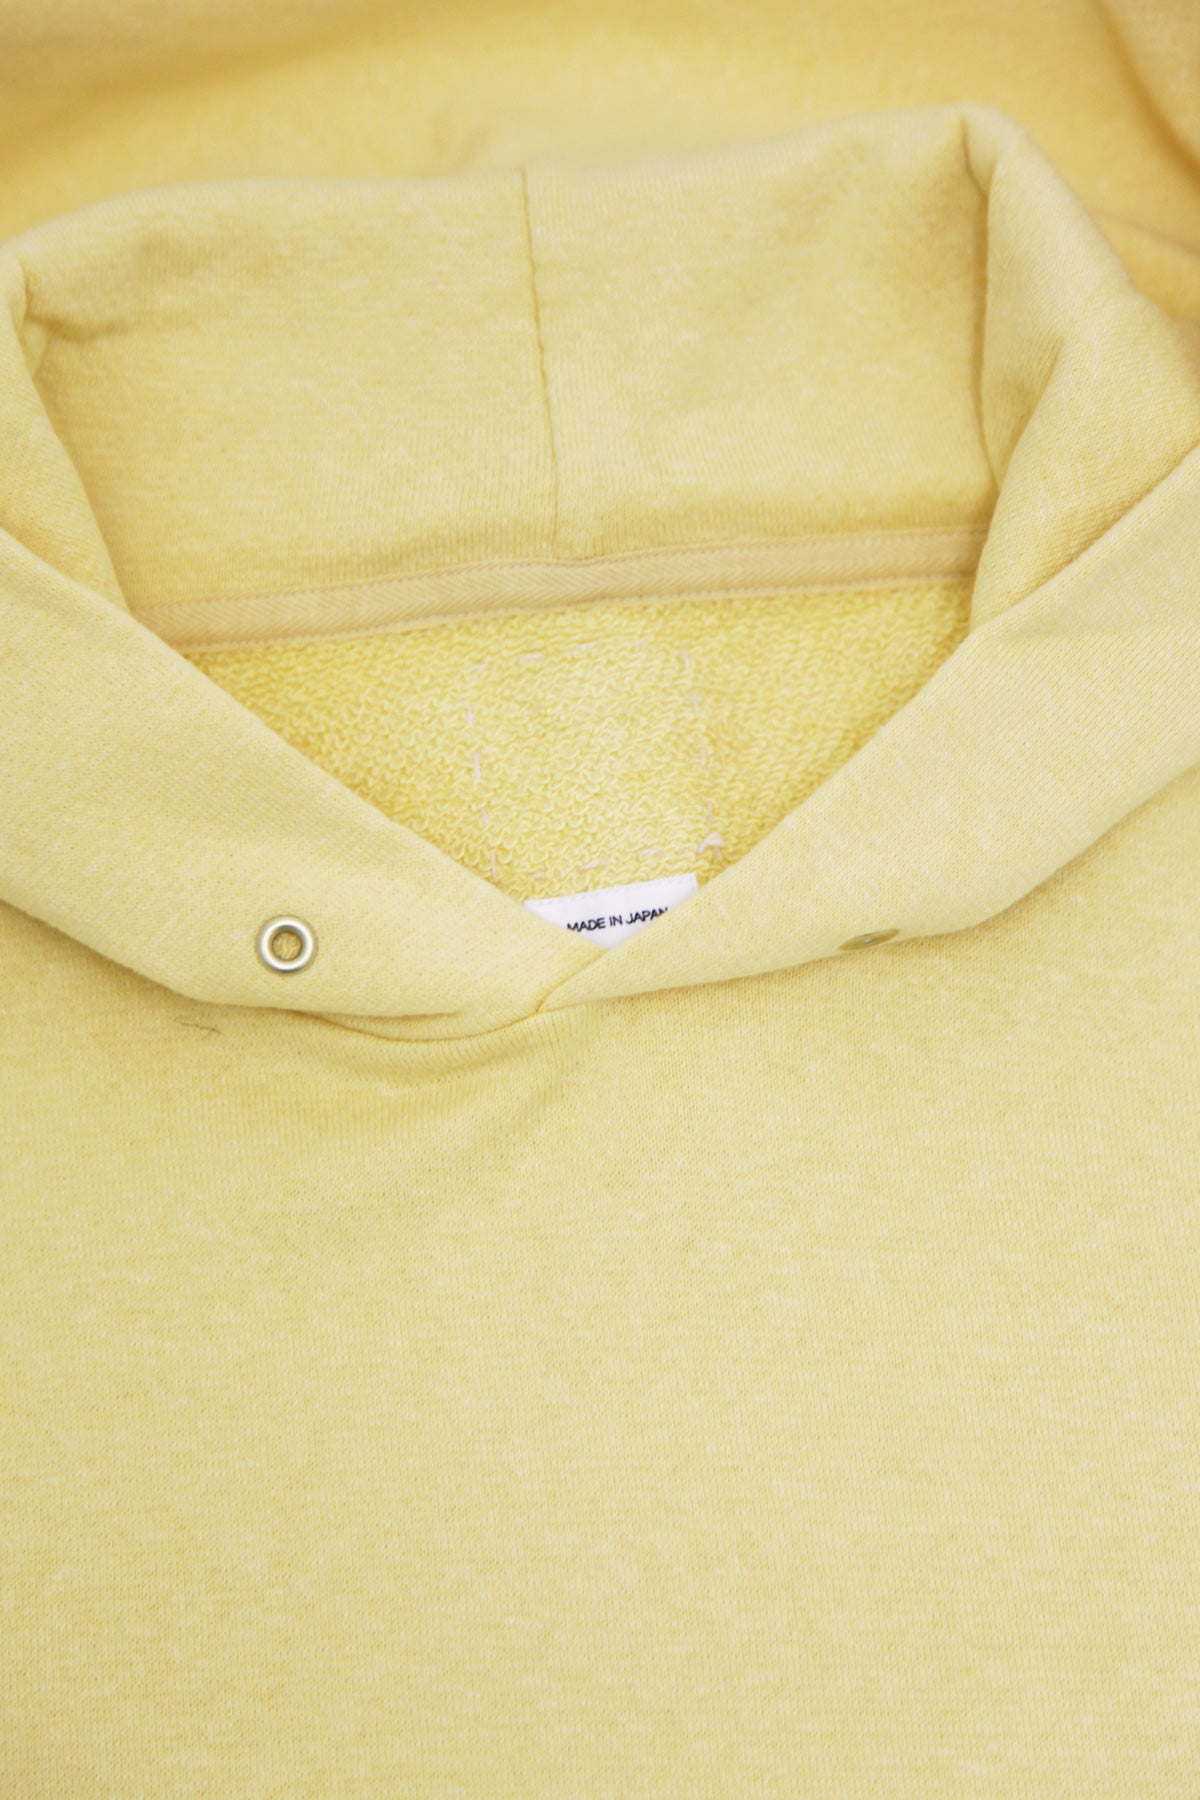 Visvim - Jumbo Hoodie P.O. Stamp - Yellow - Canoe Club